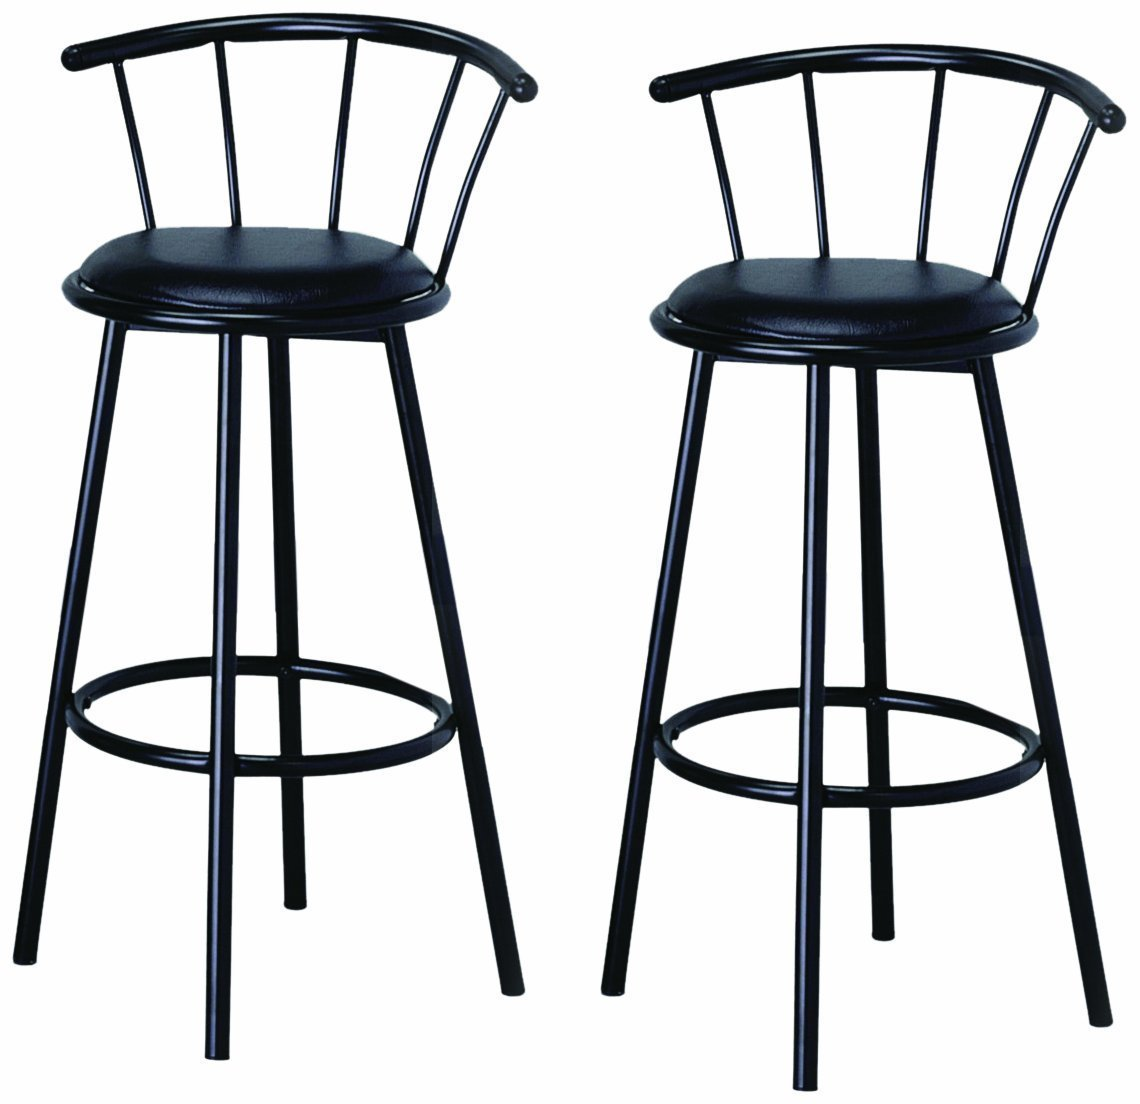 Stool Chair 29 Inch Black Finish Swivel Dining Bar Stool Chairs Set